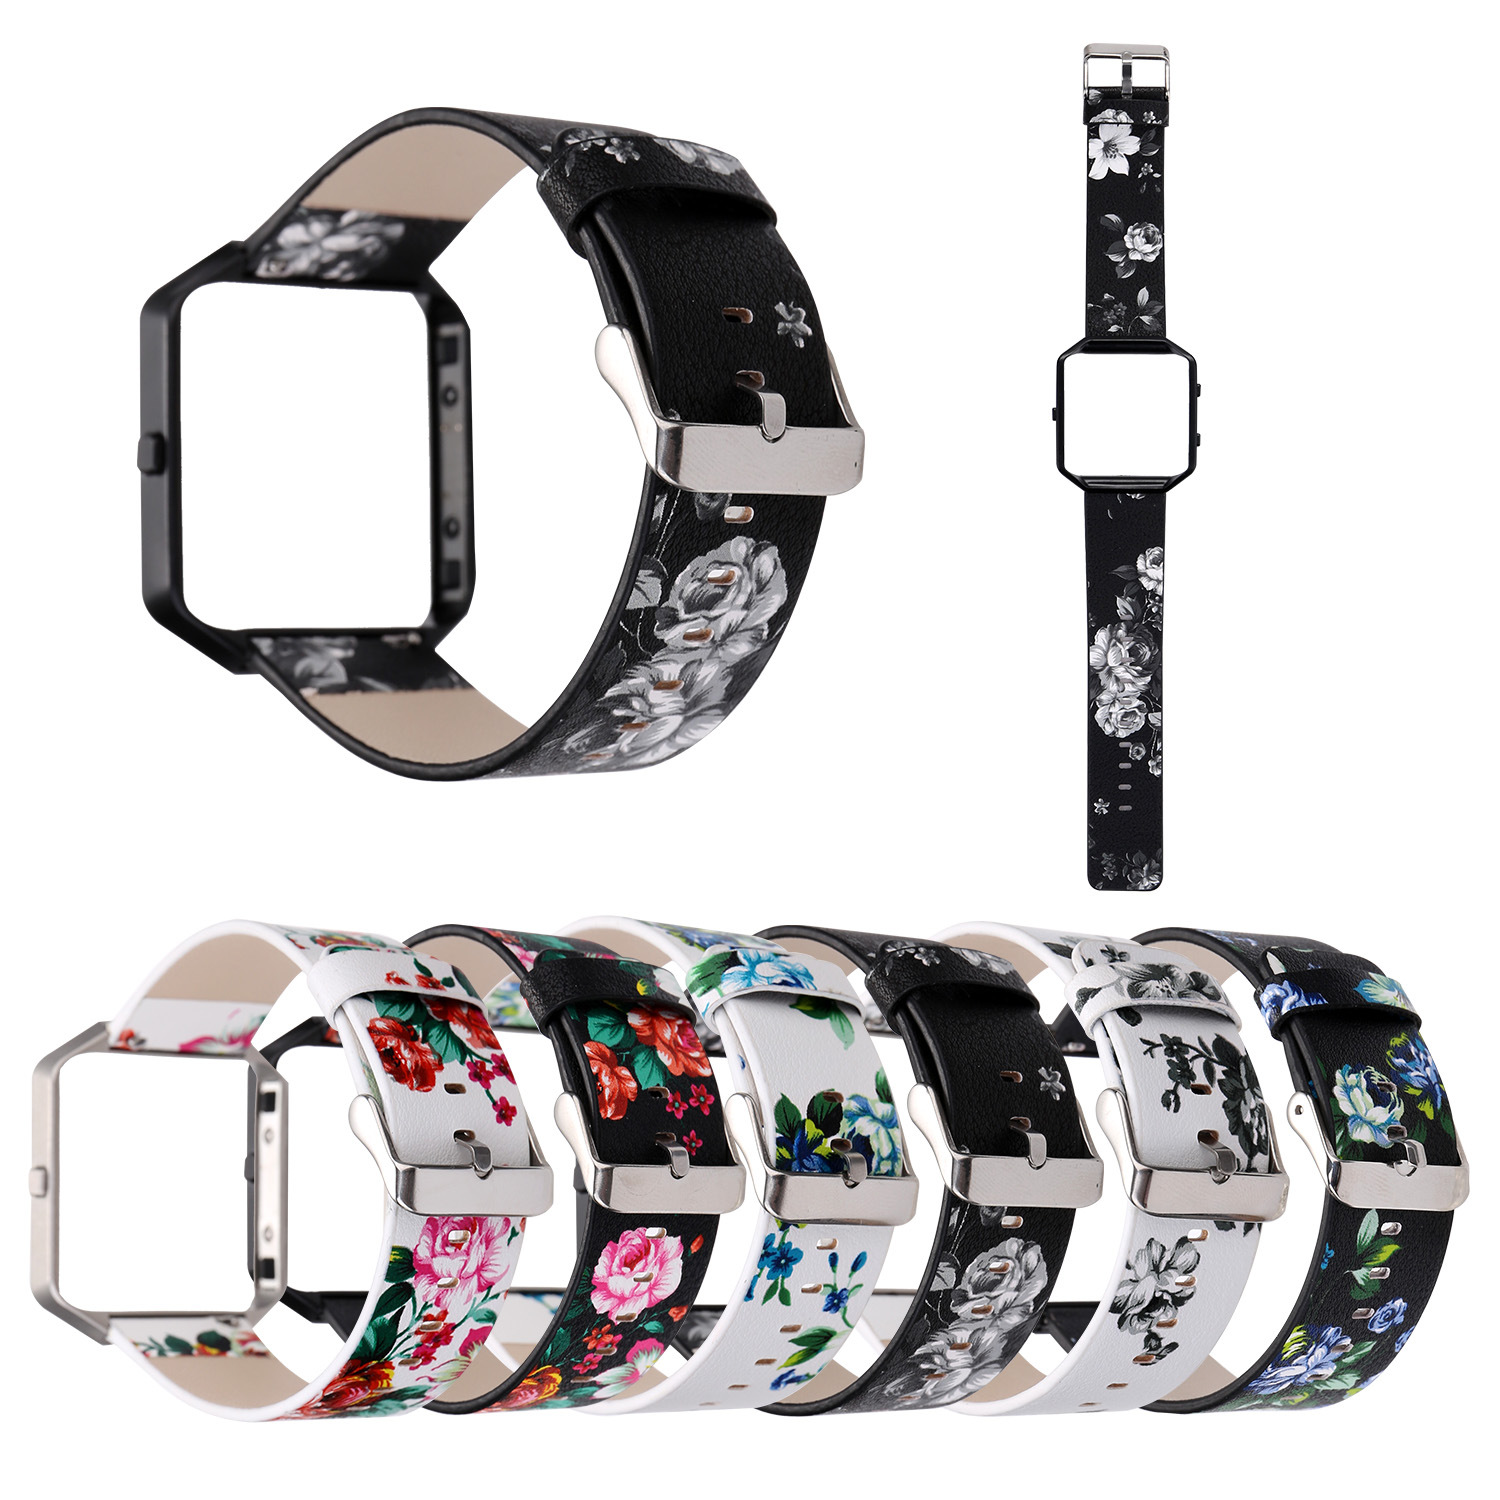 Applicable Fitbit Blaze Watch Strap Printed Pastoral Style Leather Watch Strap Smart Watch Old Floral-Print FB Leather Watch Str